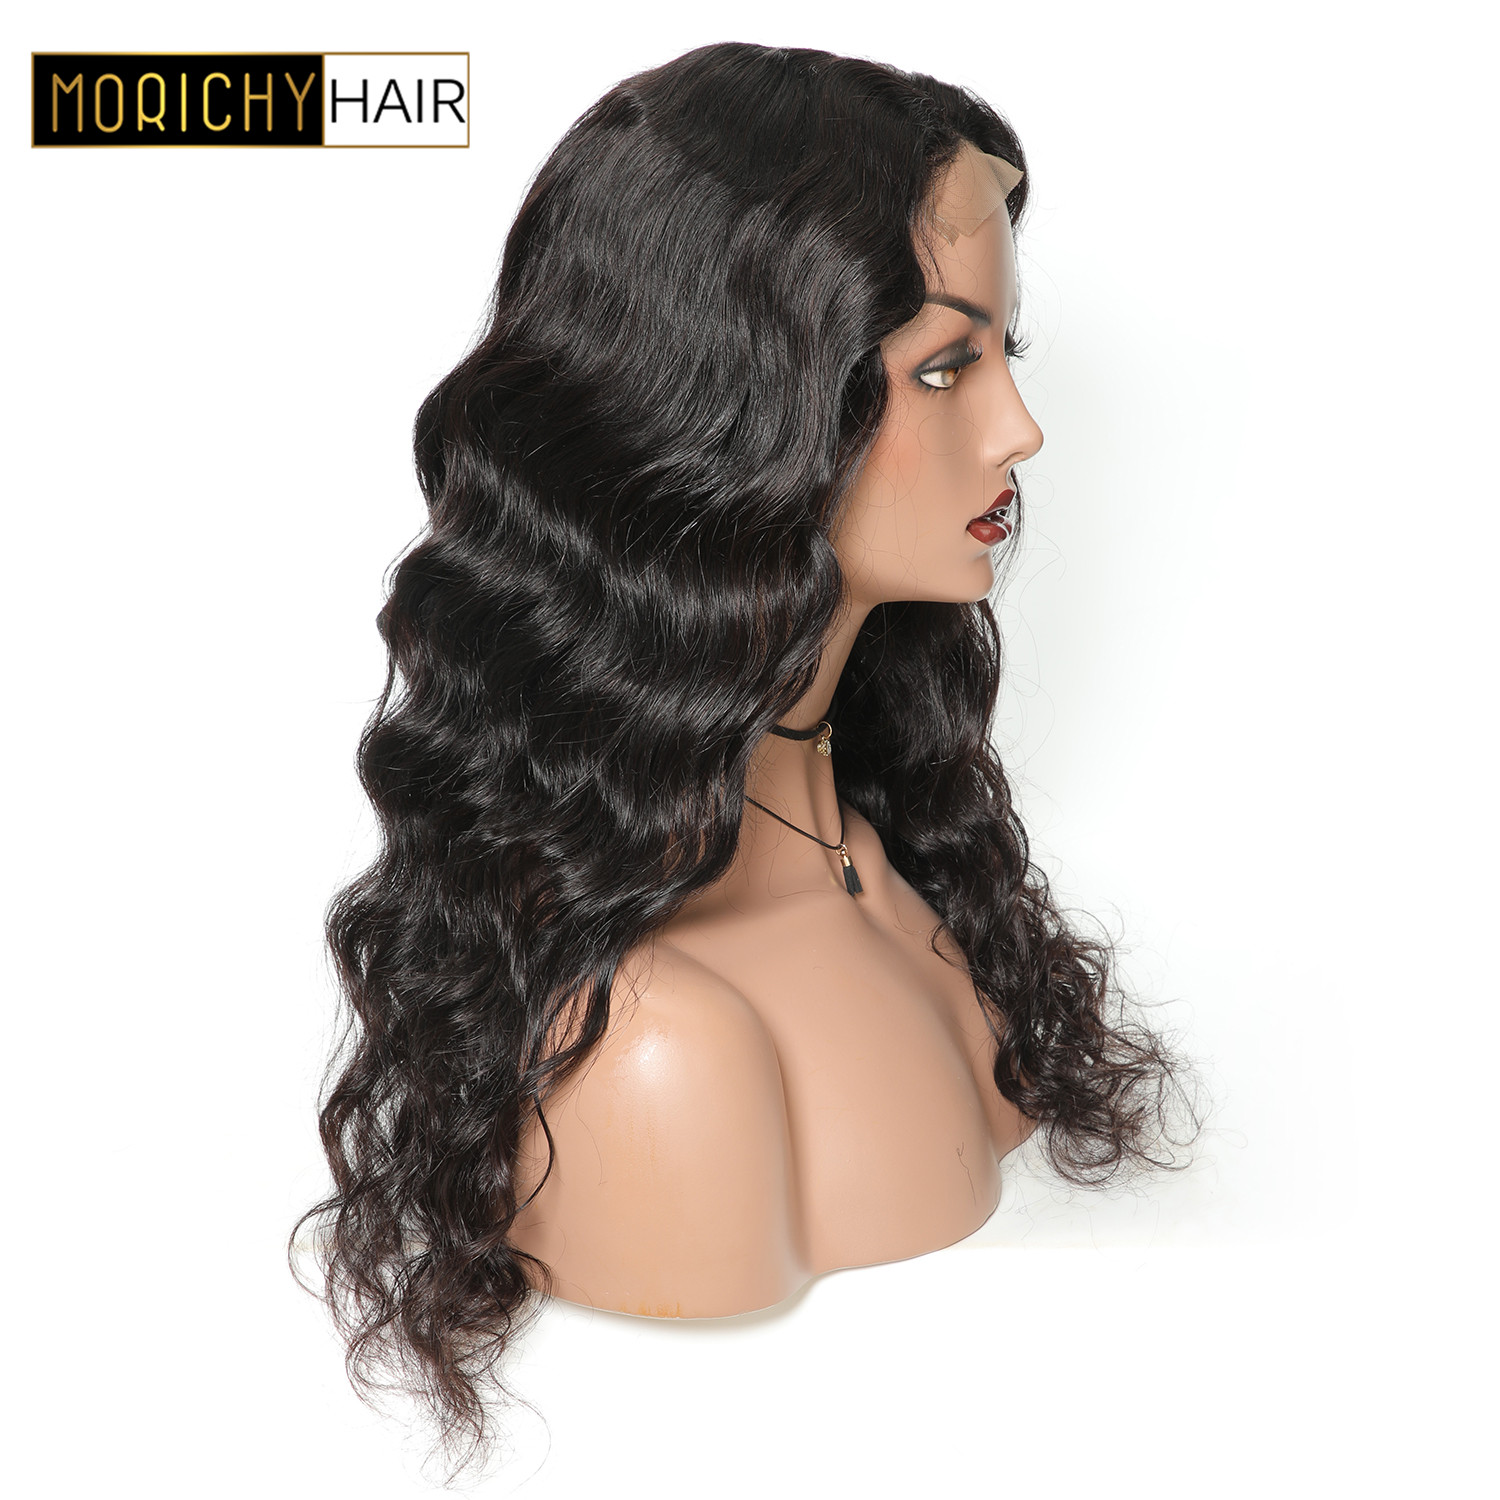 Body Wave Lace Closure Human Hair Wigs 4x4 Closure Wig Brazilian Non Remy Wig Pre Plucked With Baby Hair 150 Desnity